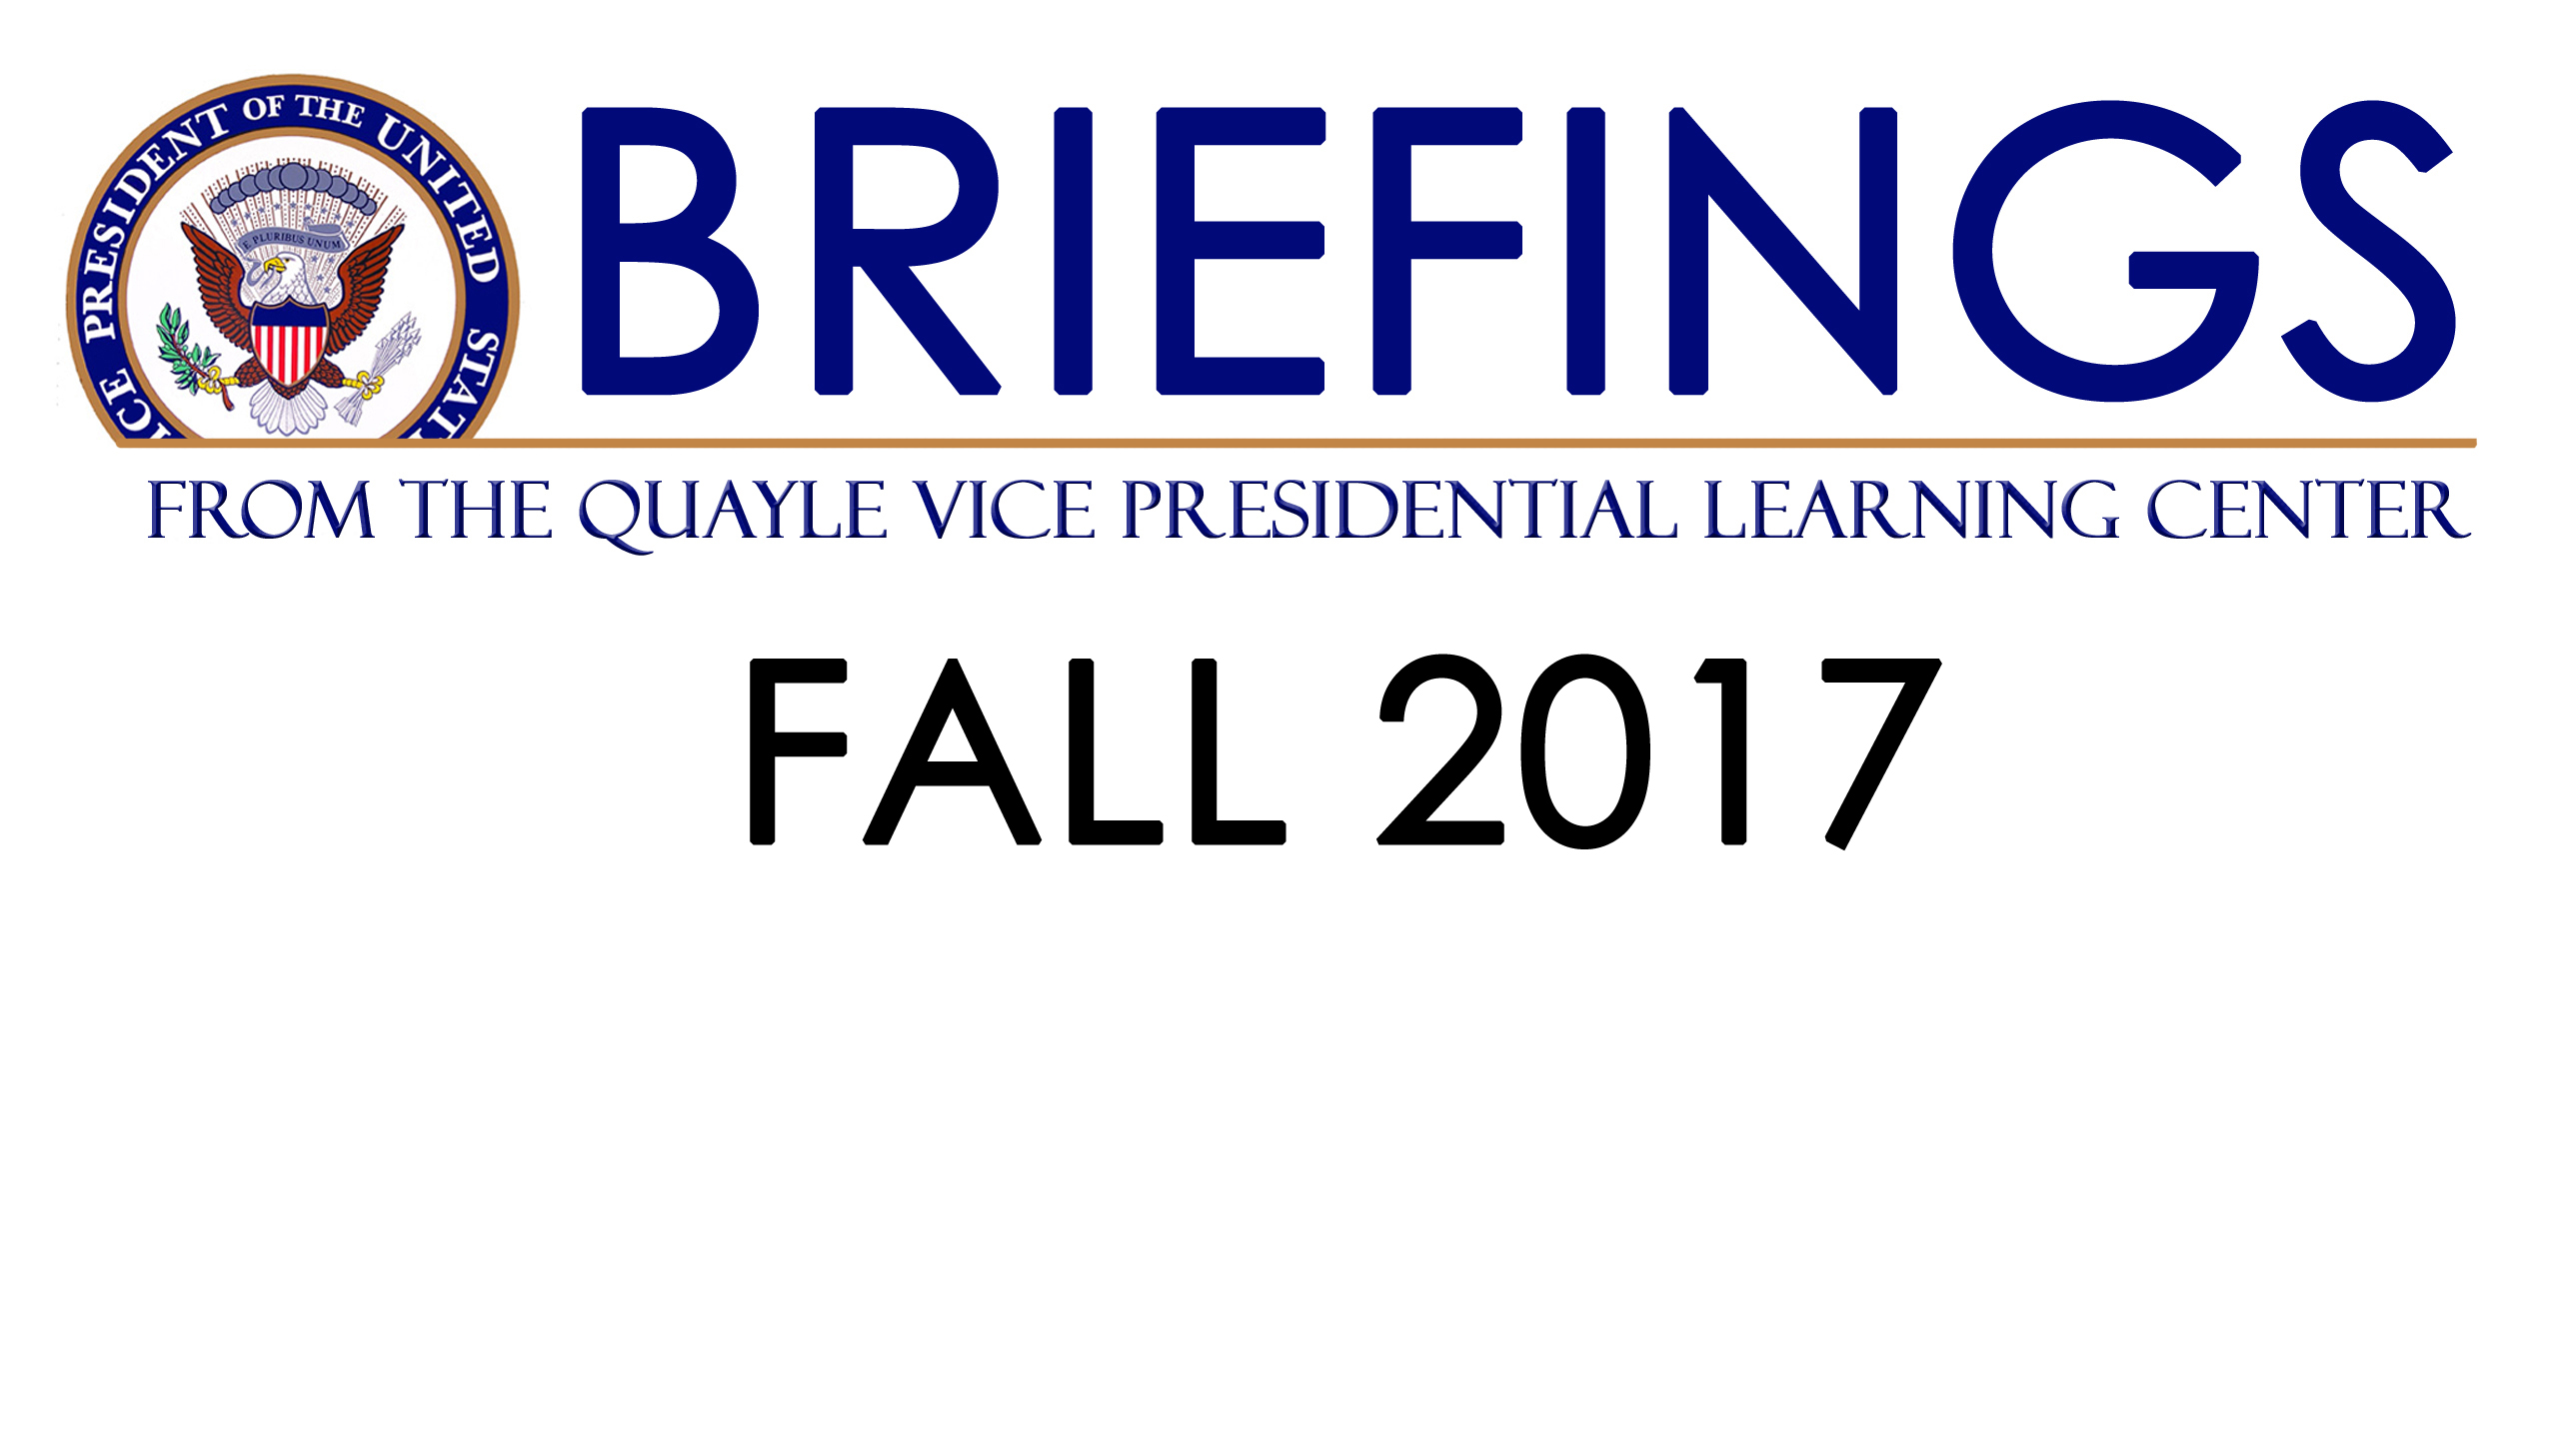 Briefings Graphic Fall 2017